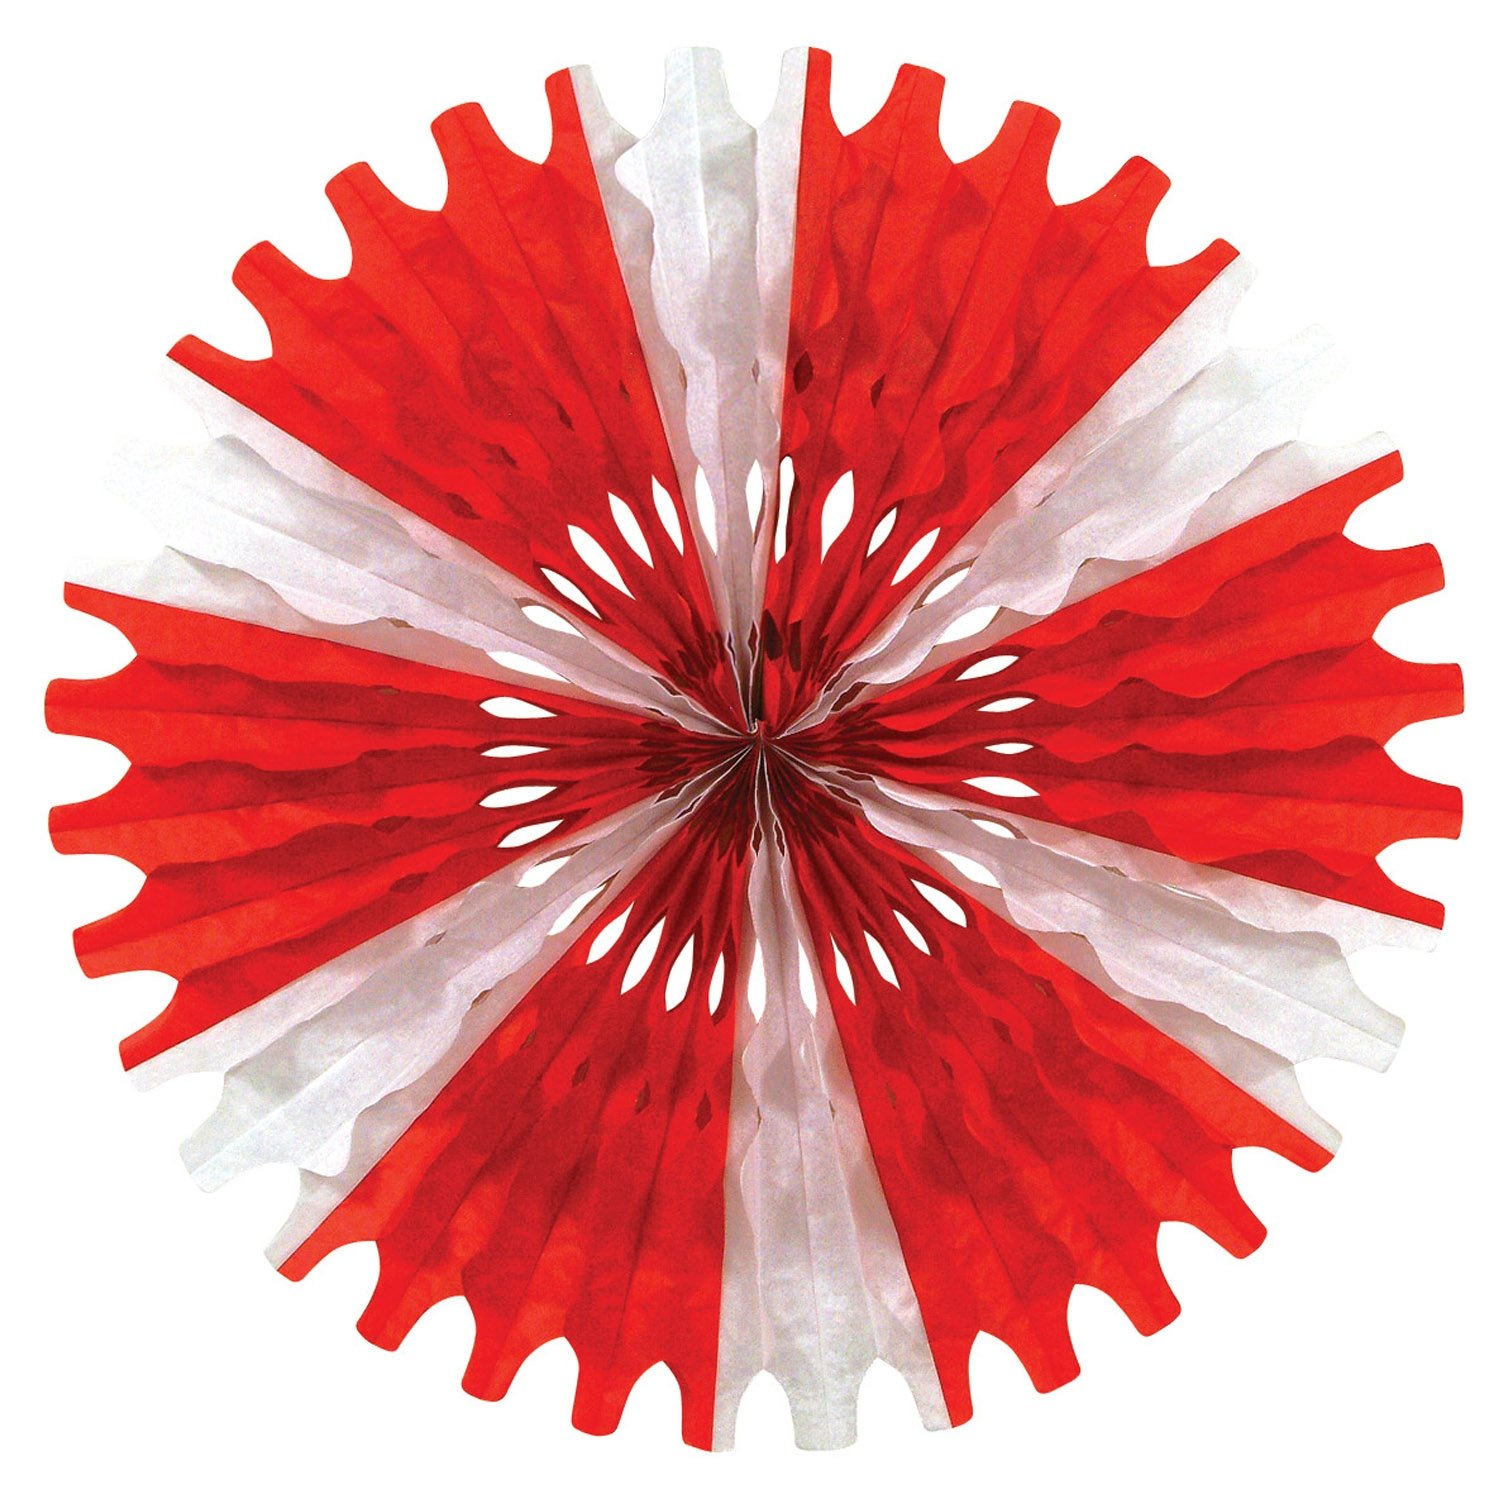 Beistle 55293-RW Red and White Tissue Fan, 25-Inch, 1 Per Package